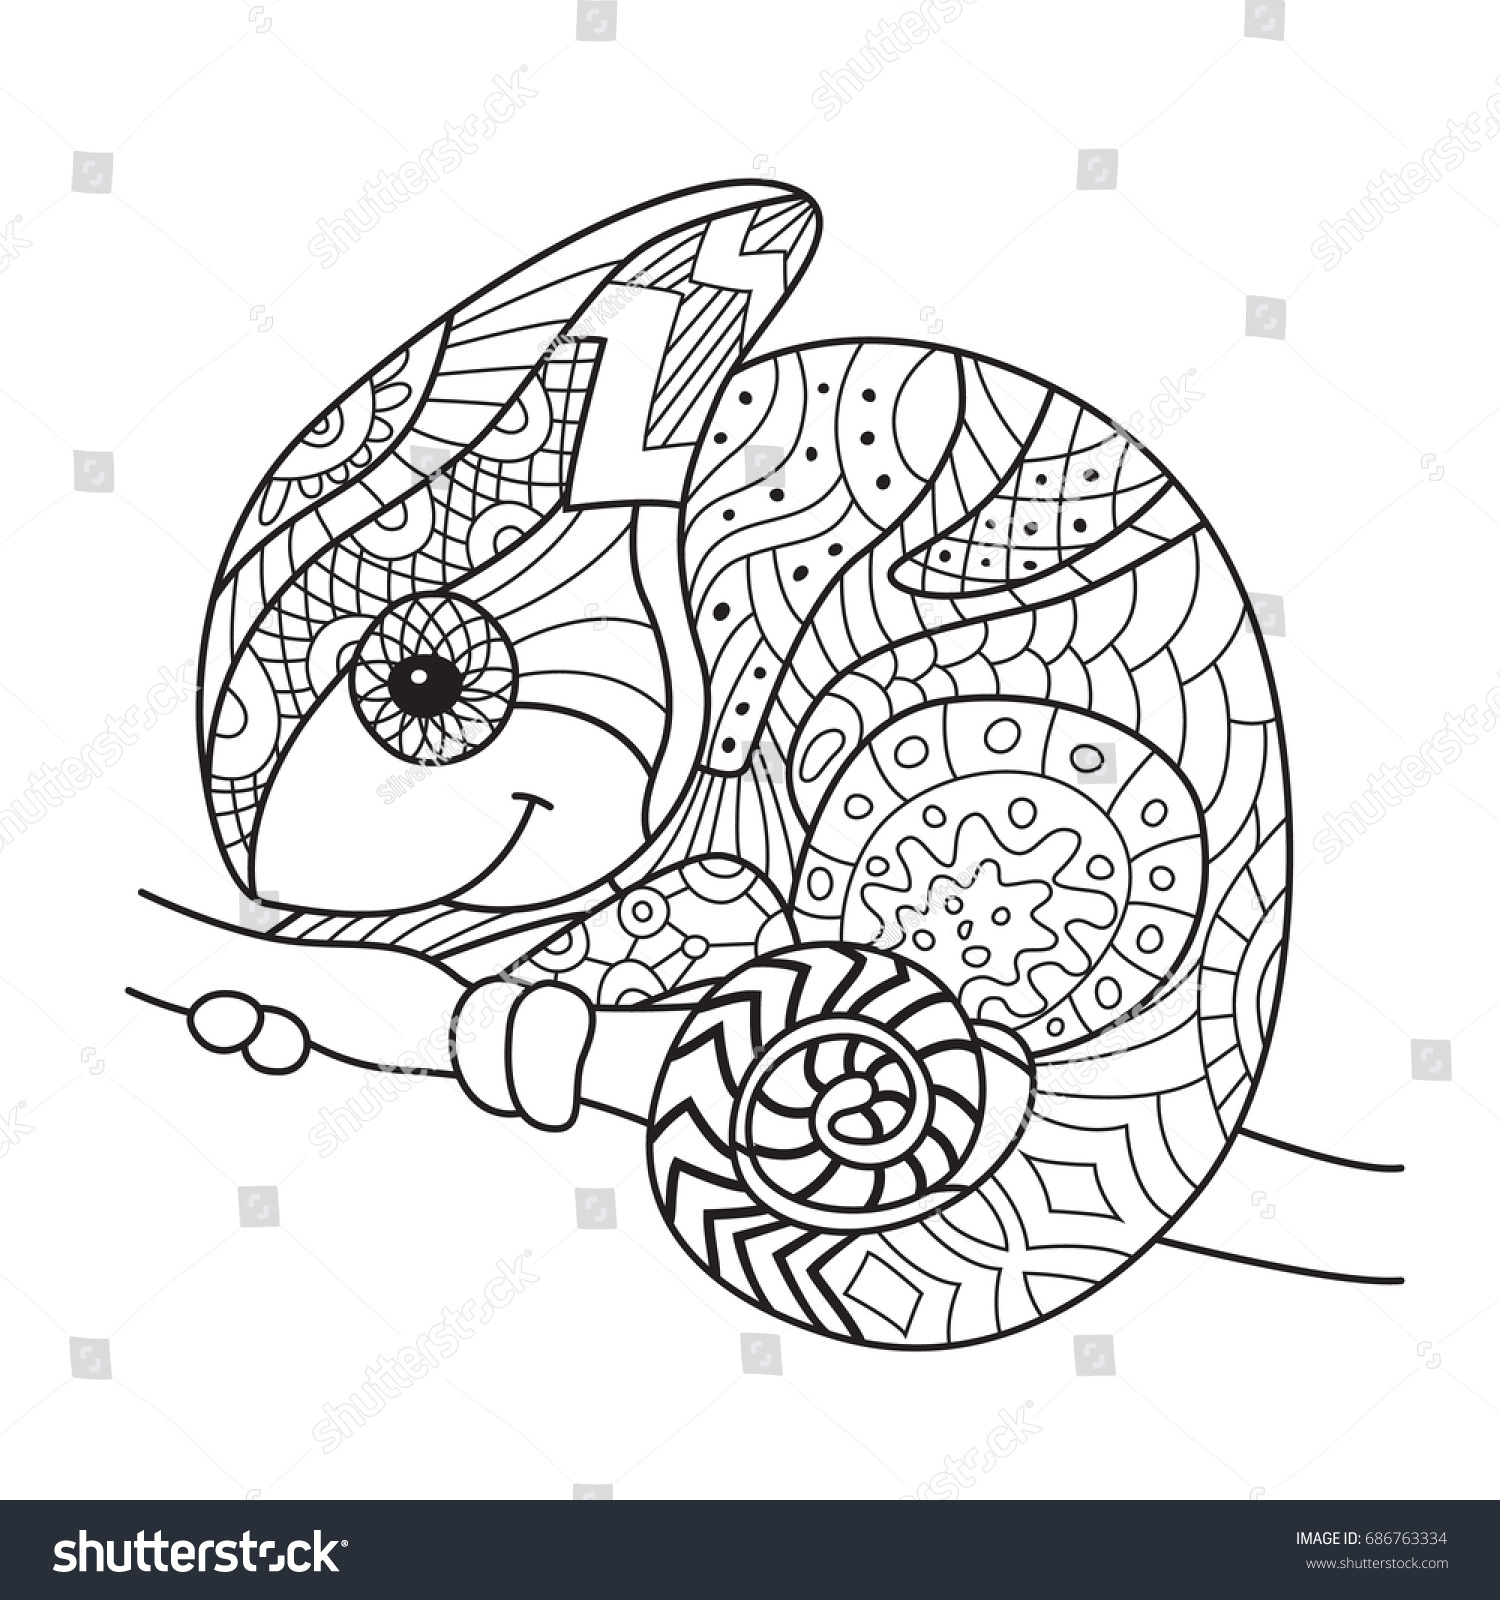 Doodle Coloring Book Page Funny Chameleon Stock Vector 686763334 ...